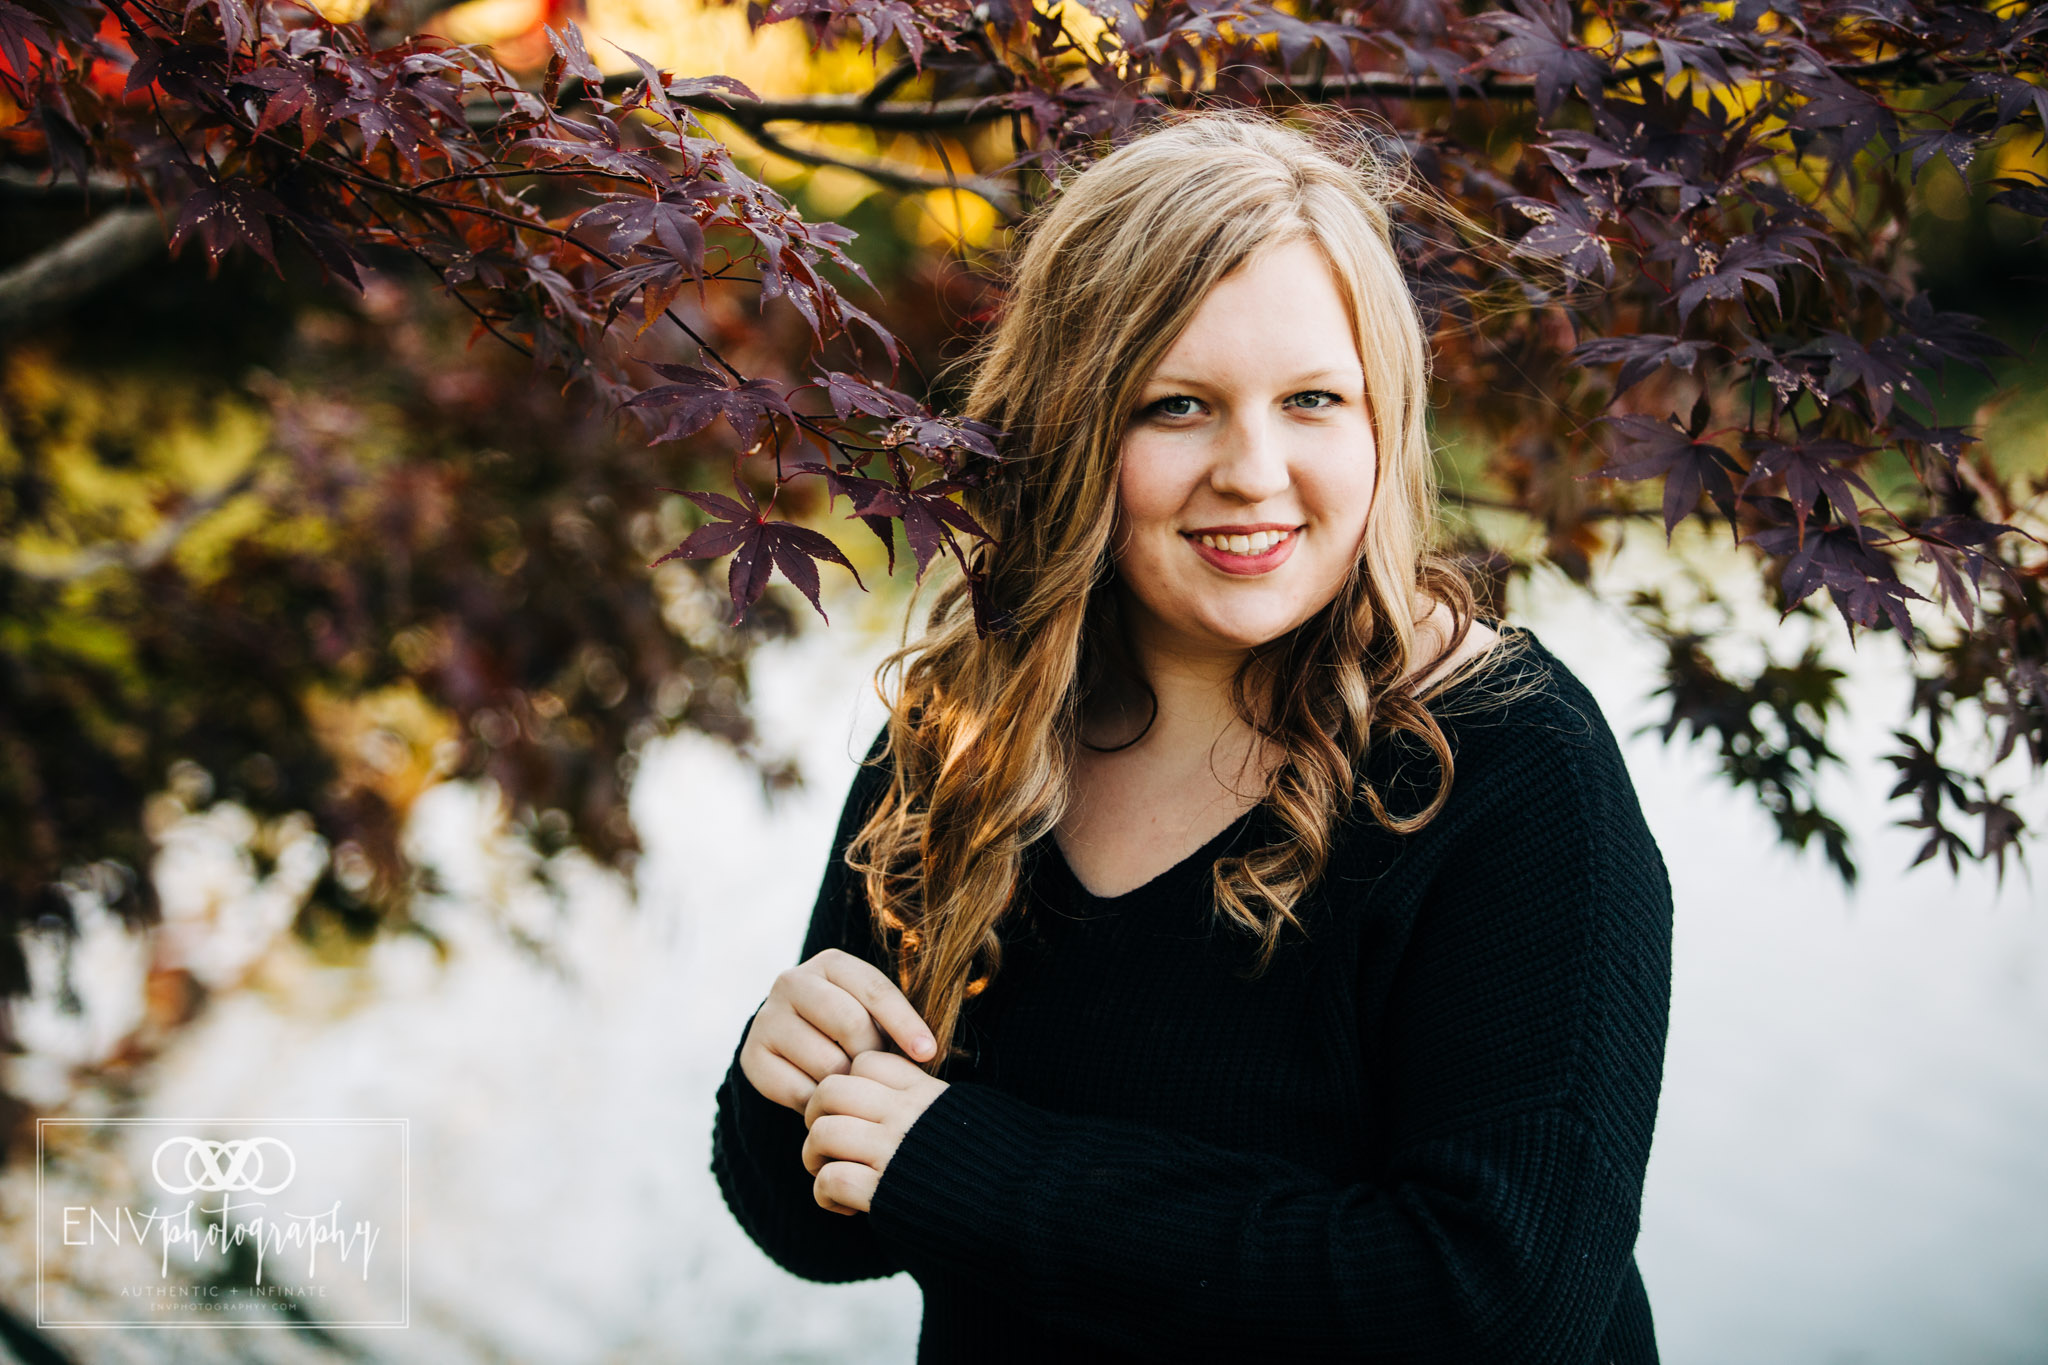 mount vernon columbus ohio senior portrait photographer (10).jpg